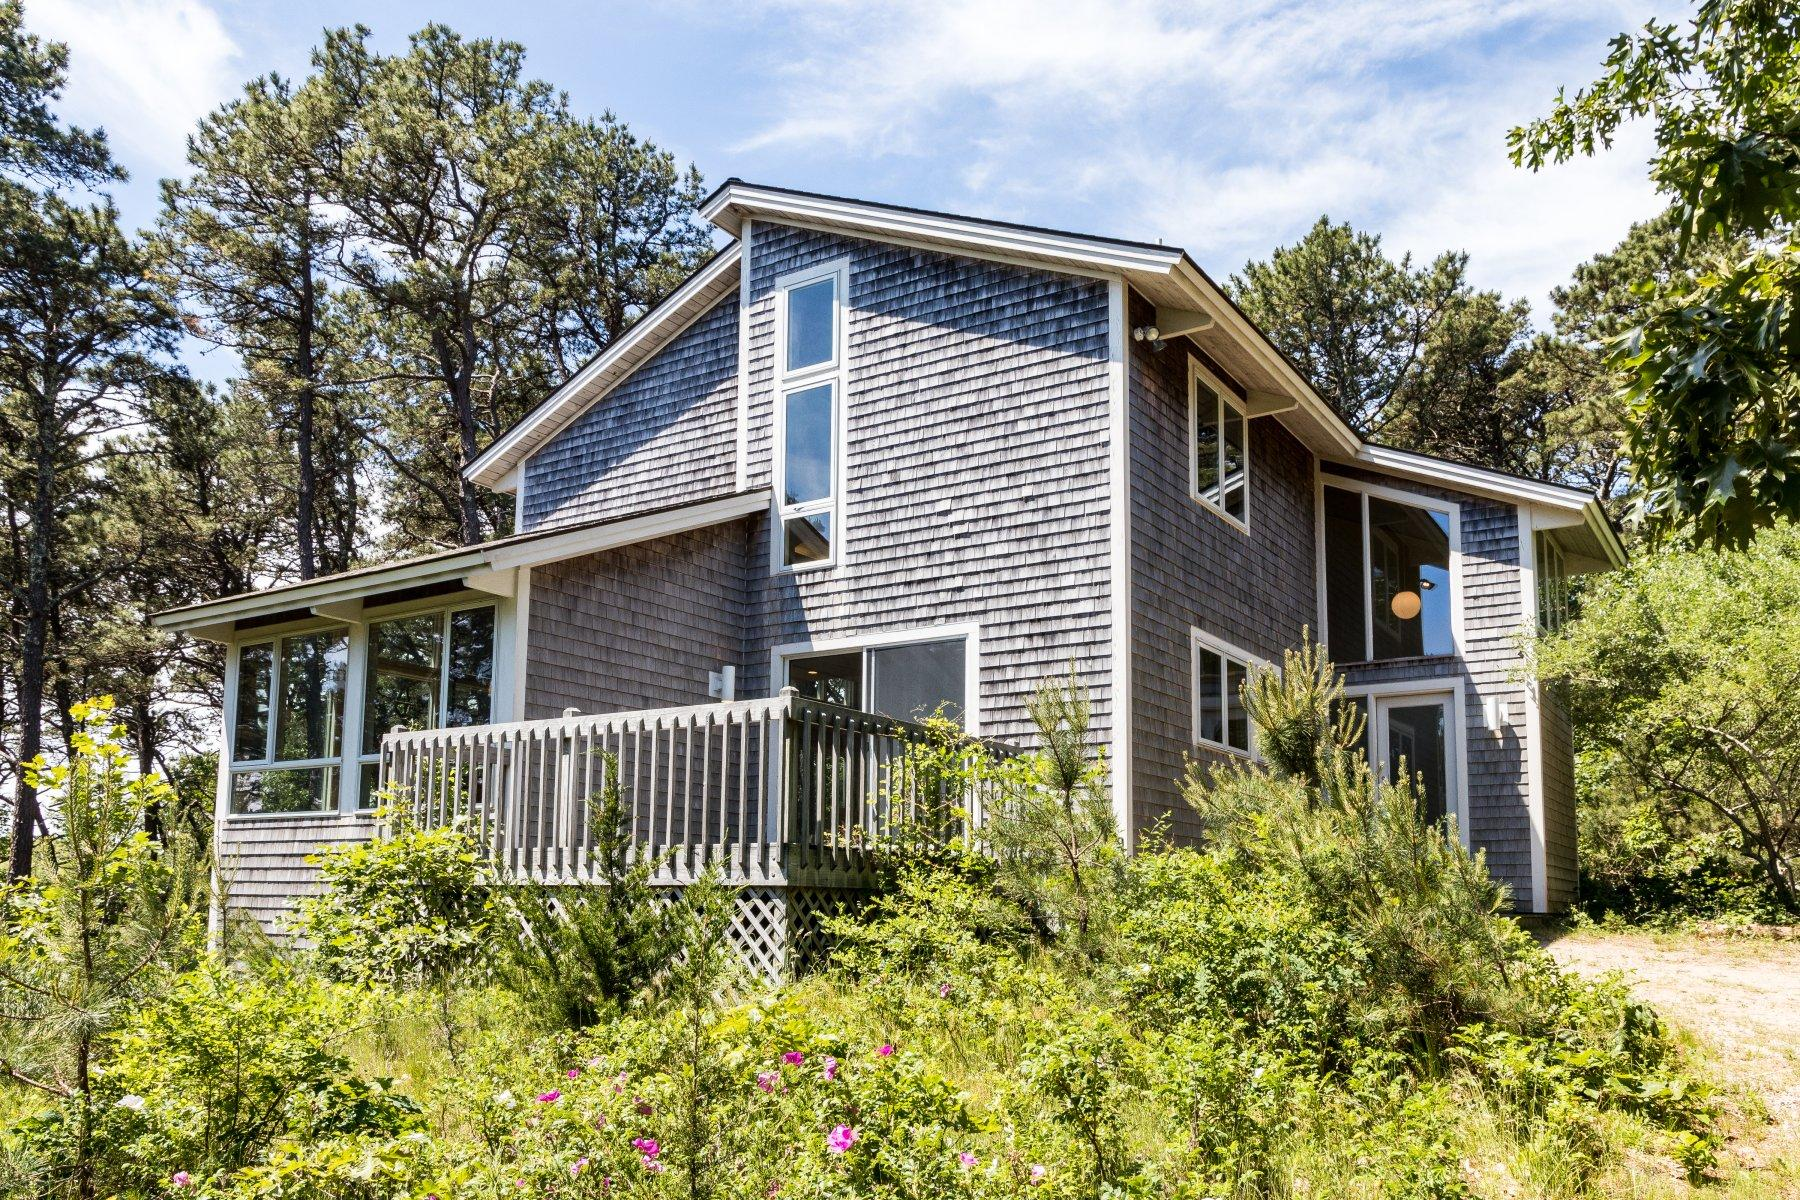 Single Family Homes for Active at 2101 Old Kings Highway, Wellfleet, MA 2101 Old Kings Highway Wellfleet, Massachusetts 02667 United States